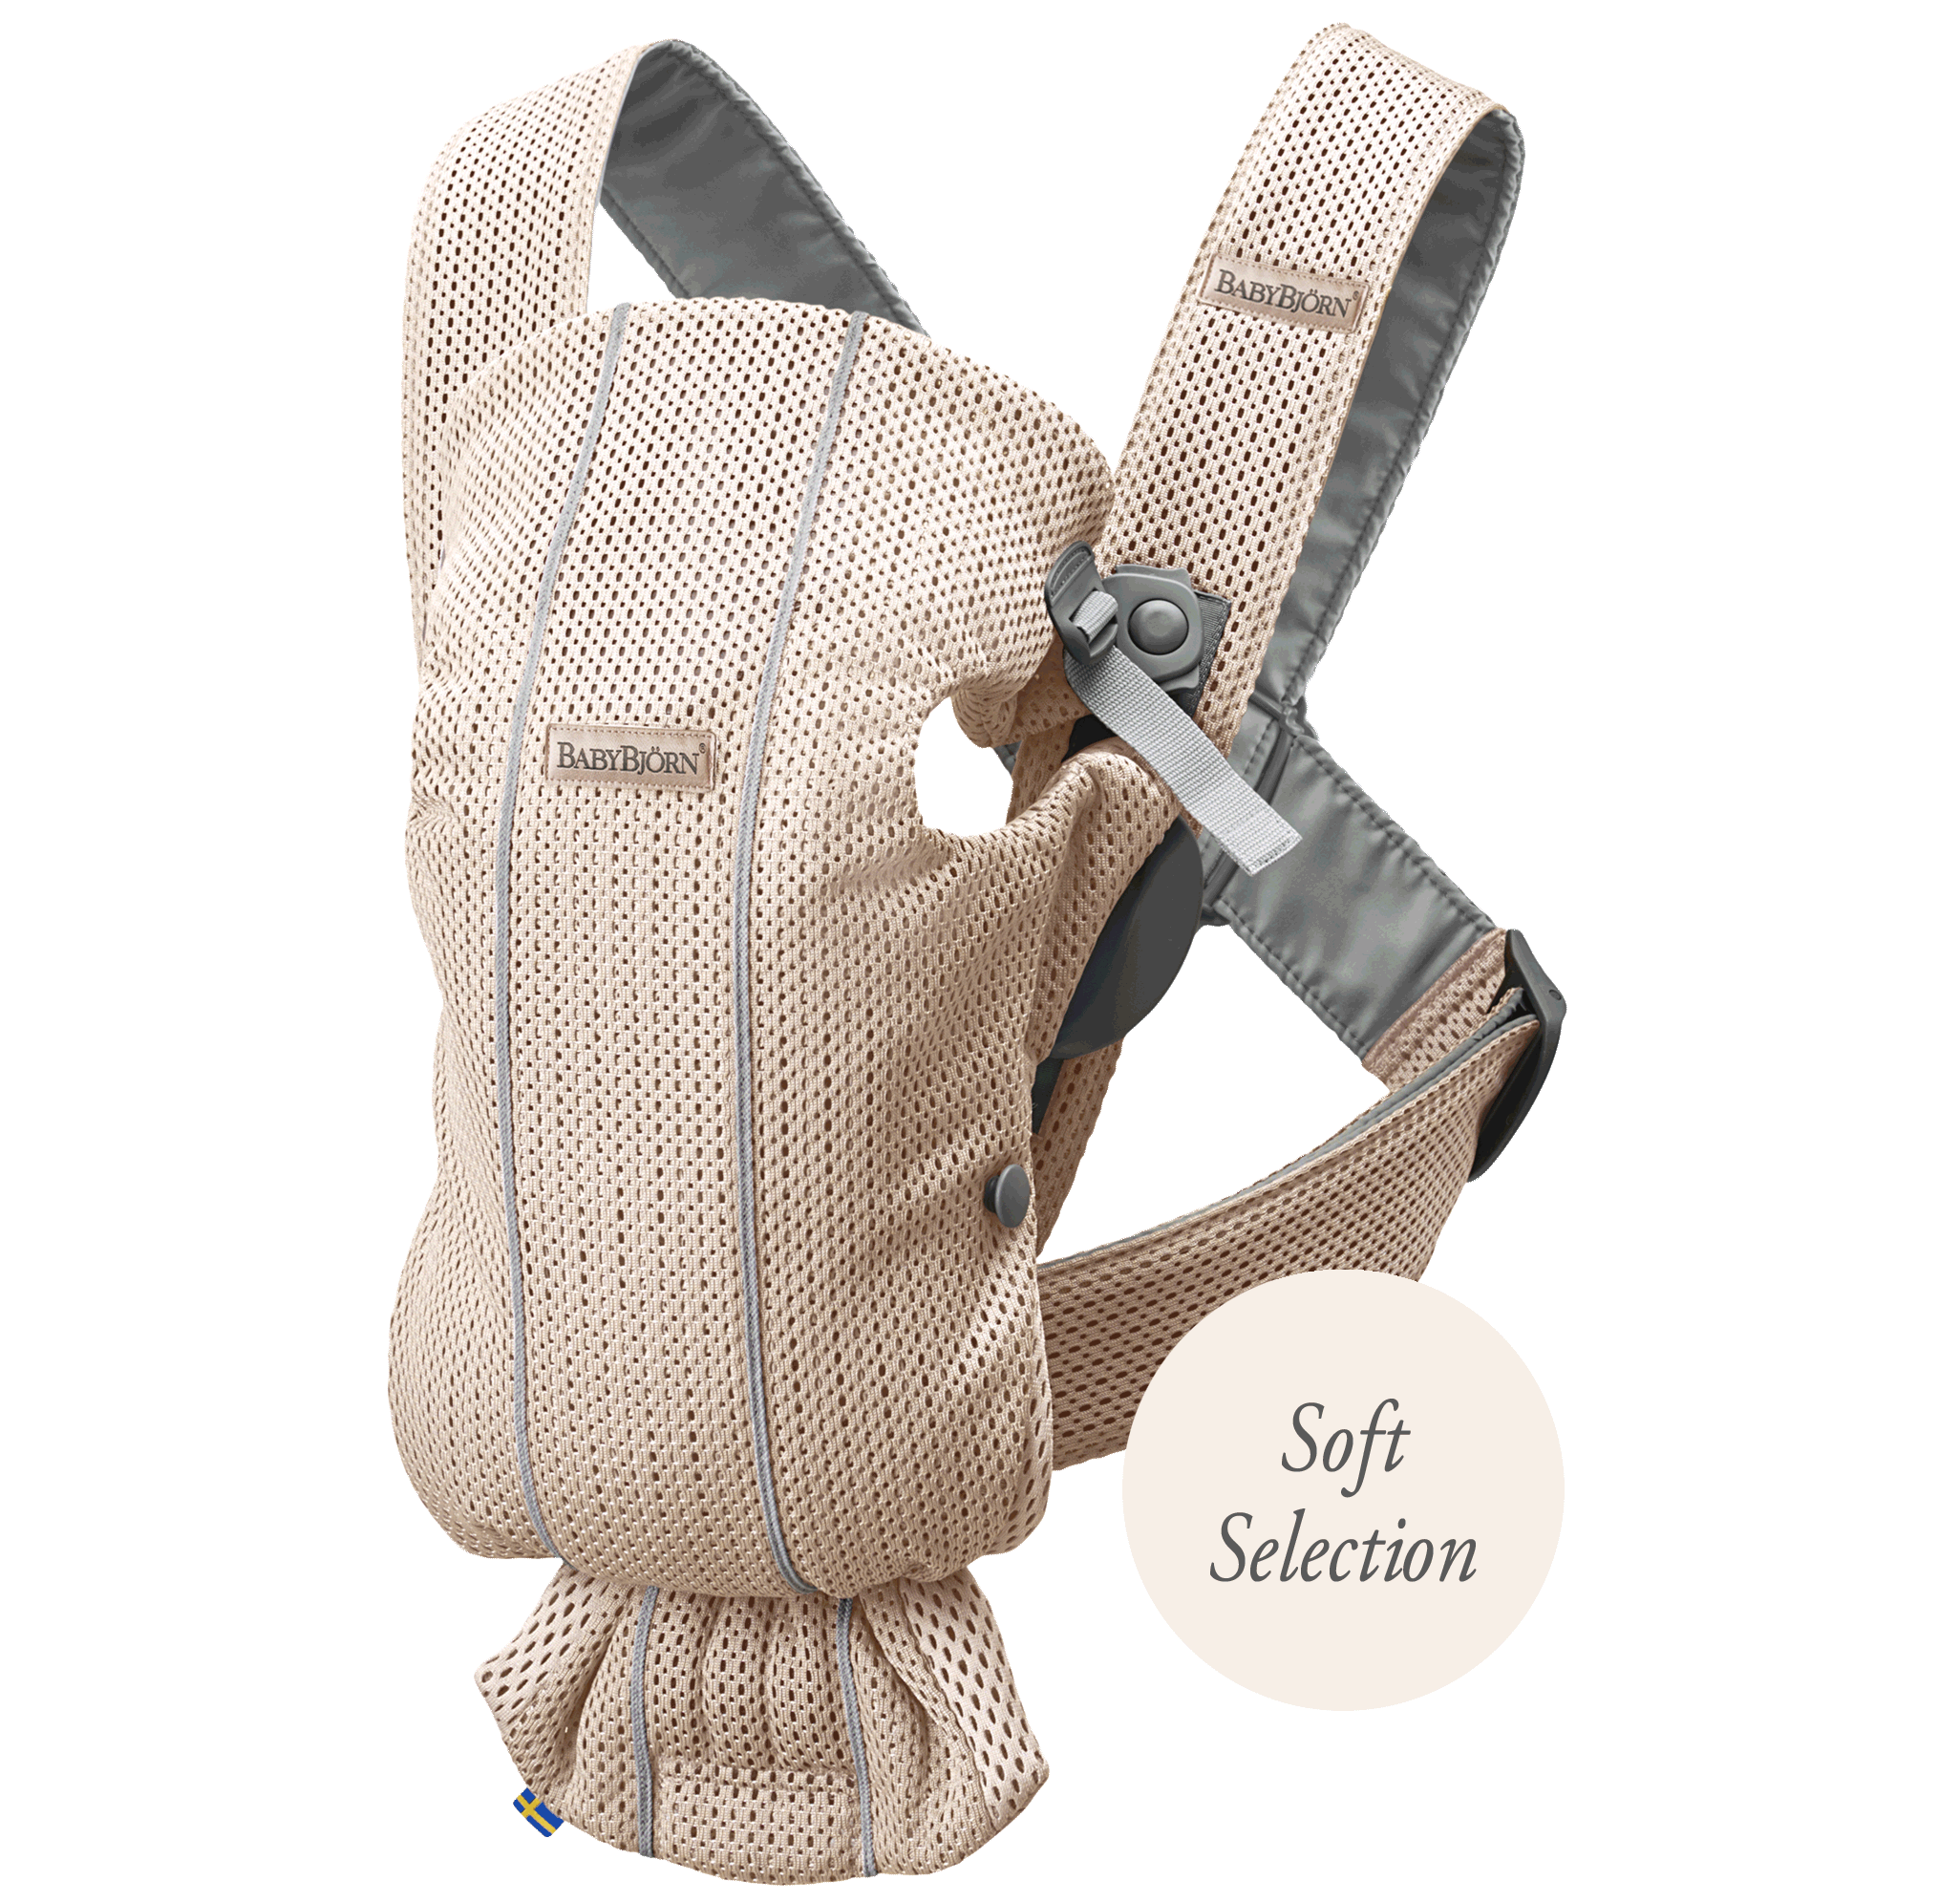 New Baby Carrier Mini Pearly pink 3D Mesh, Soft selection, soft and airy and easy to use, perfect for newborn - BABYBJÖRN